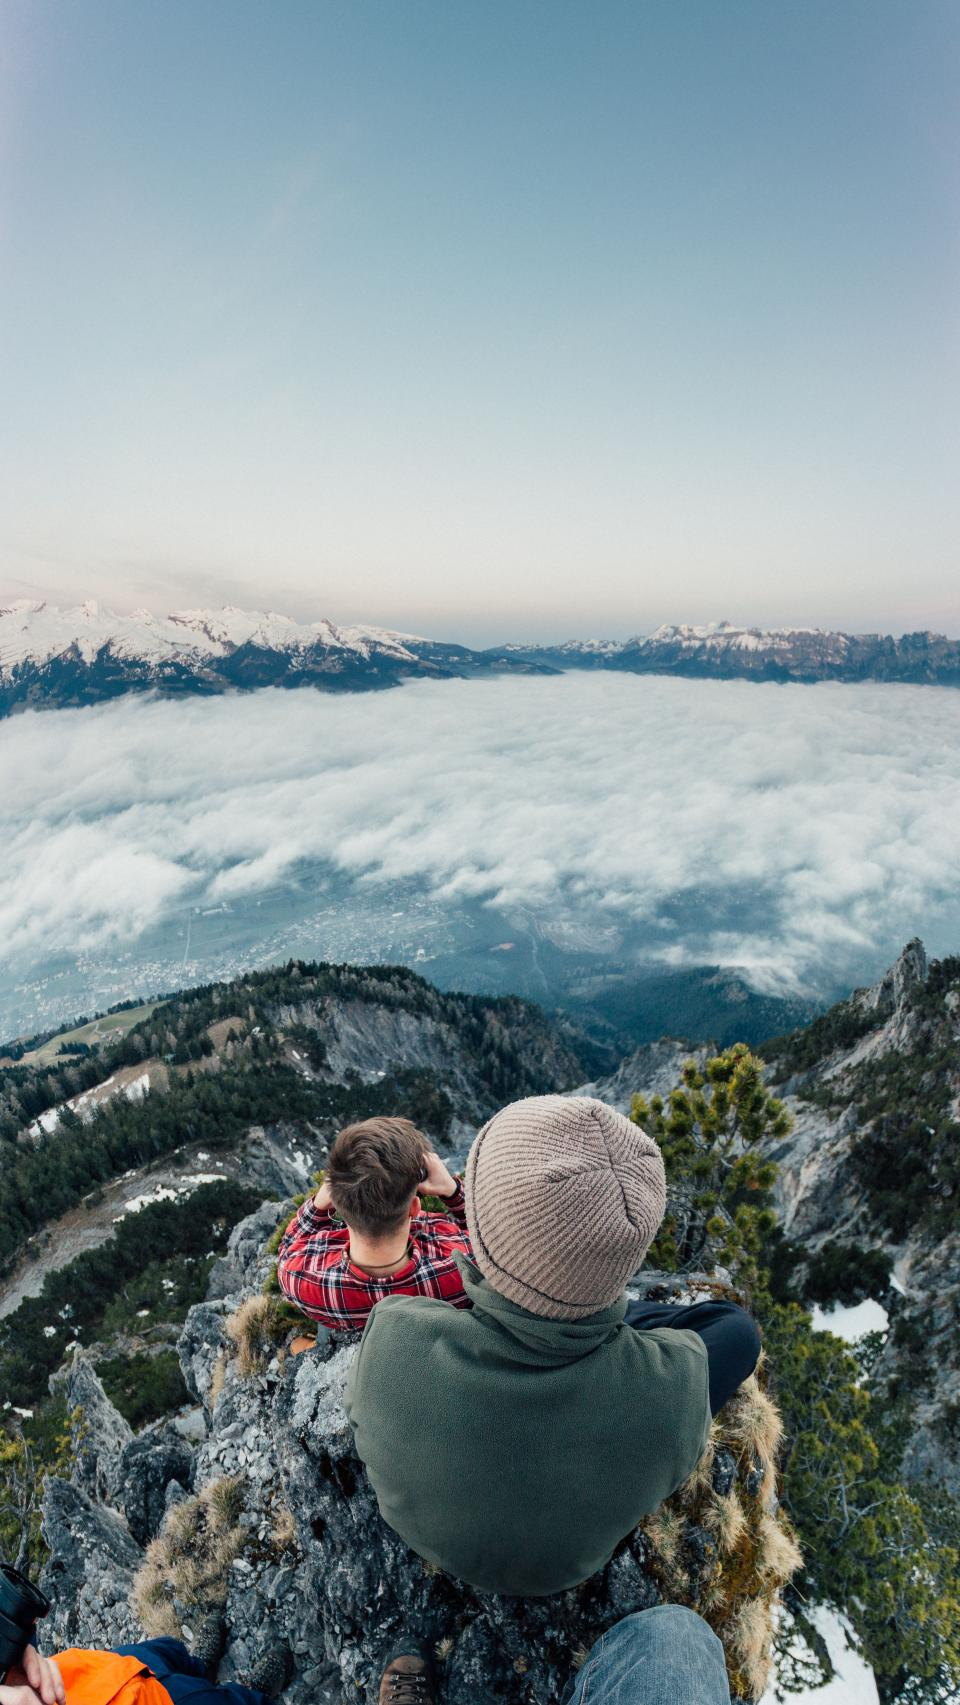 mountain highland cloud sky summit ridge landscape nature valley hill snow winter view travel trees people outdoor adventure hiking climbing girl man millennials